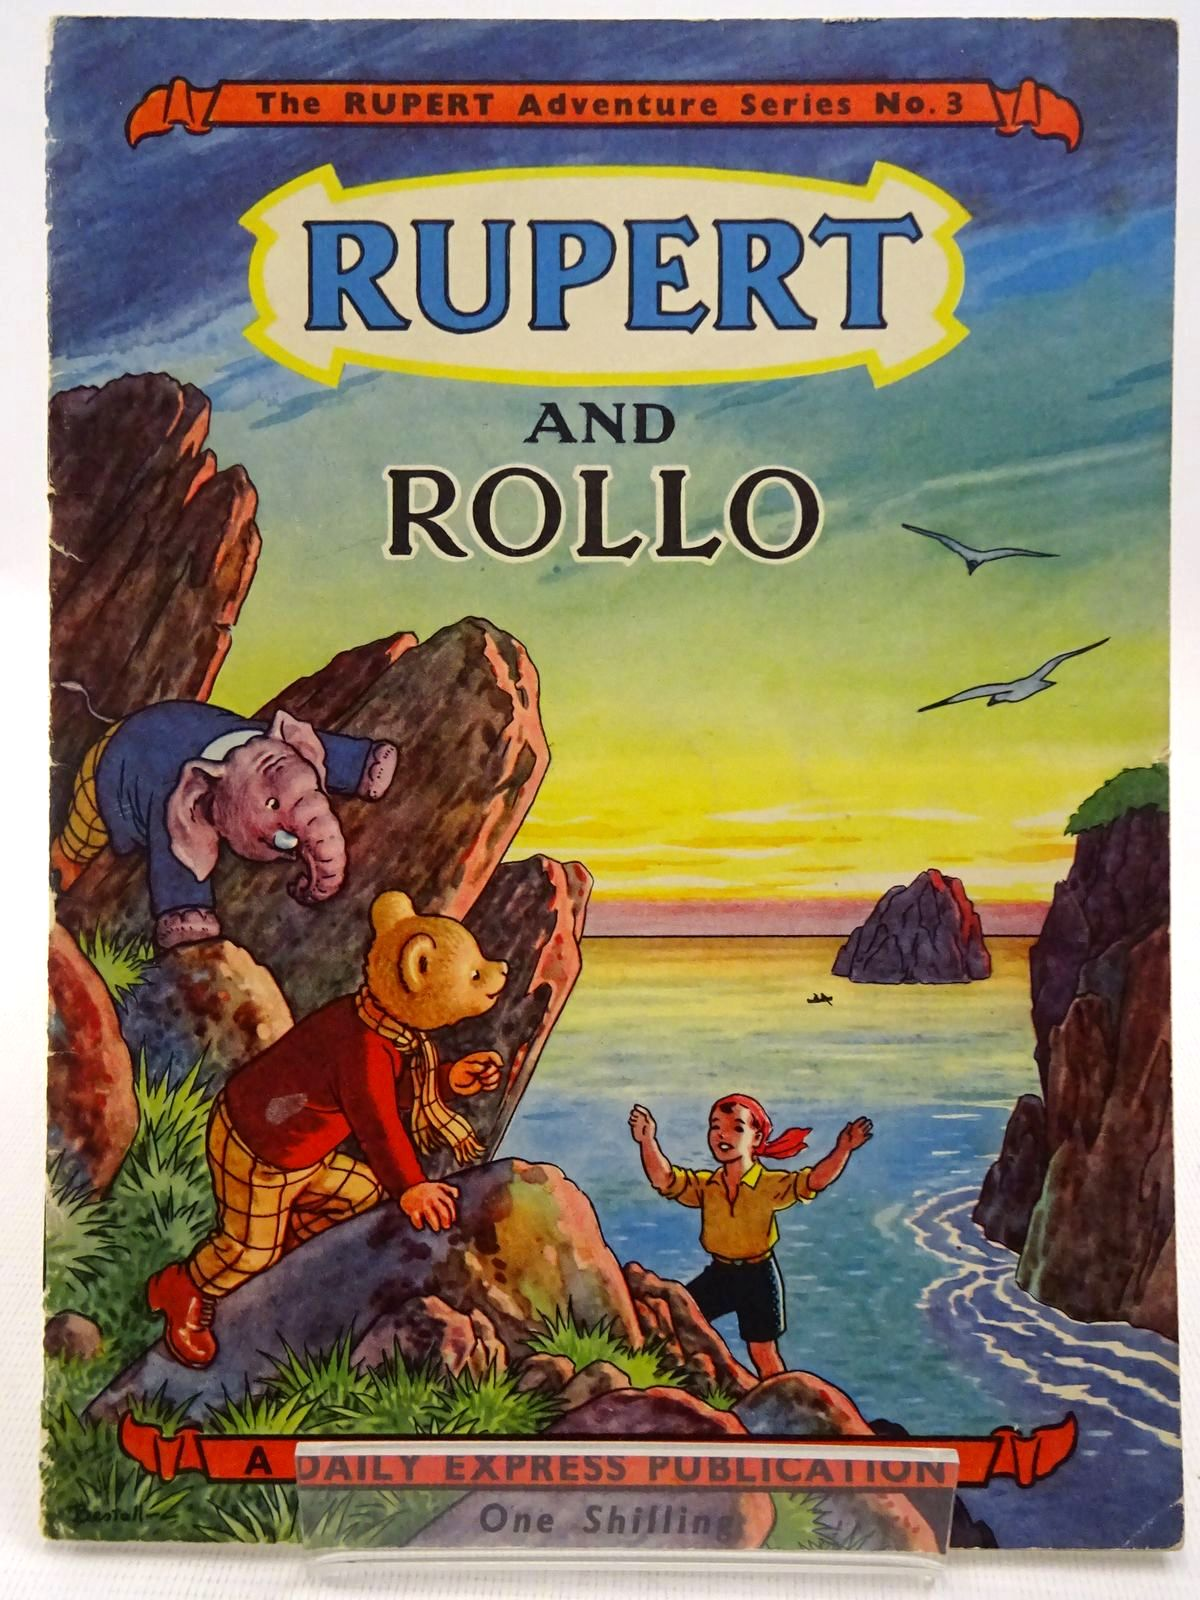 Photo of RUPERT ADVENTURE SERIES No. 3 - RUPERT AND ROLLO- Stock Number: 2128605